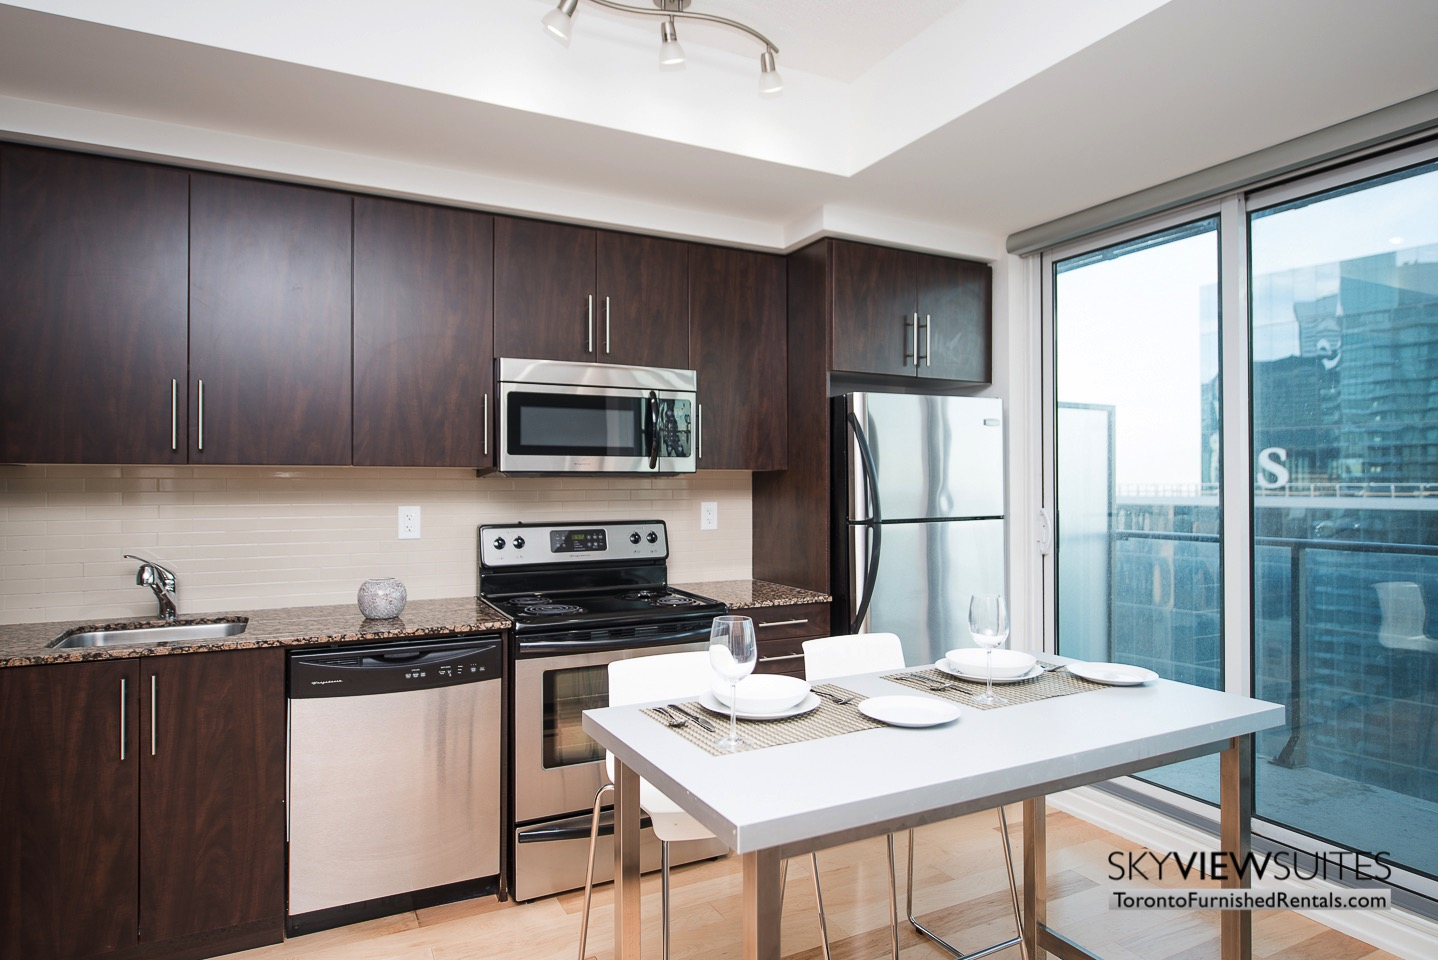 MLS furnished condo toronto oven kitchen